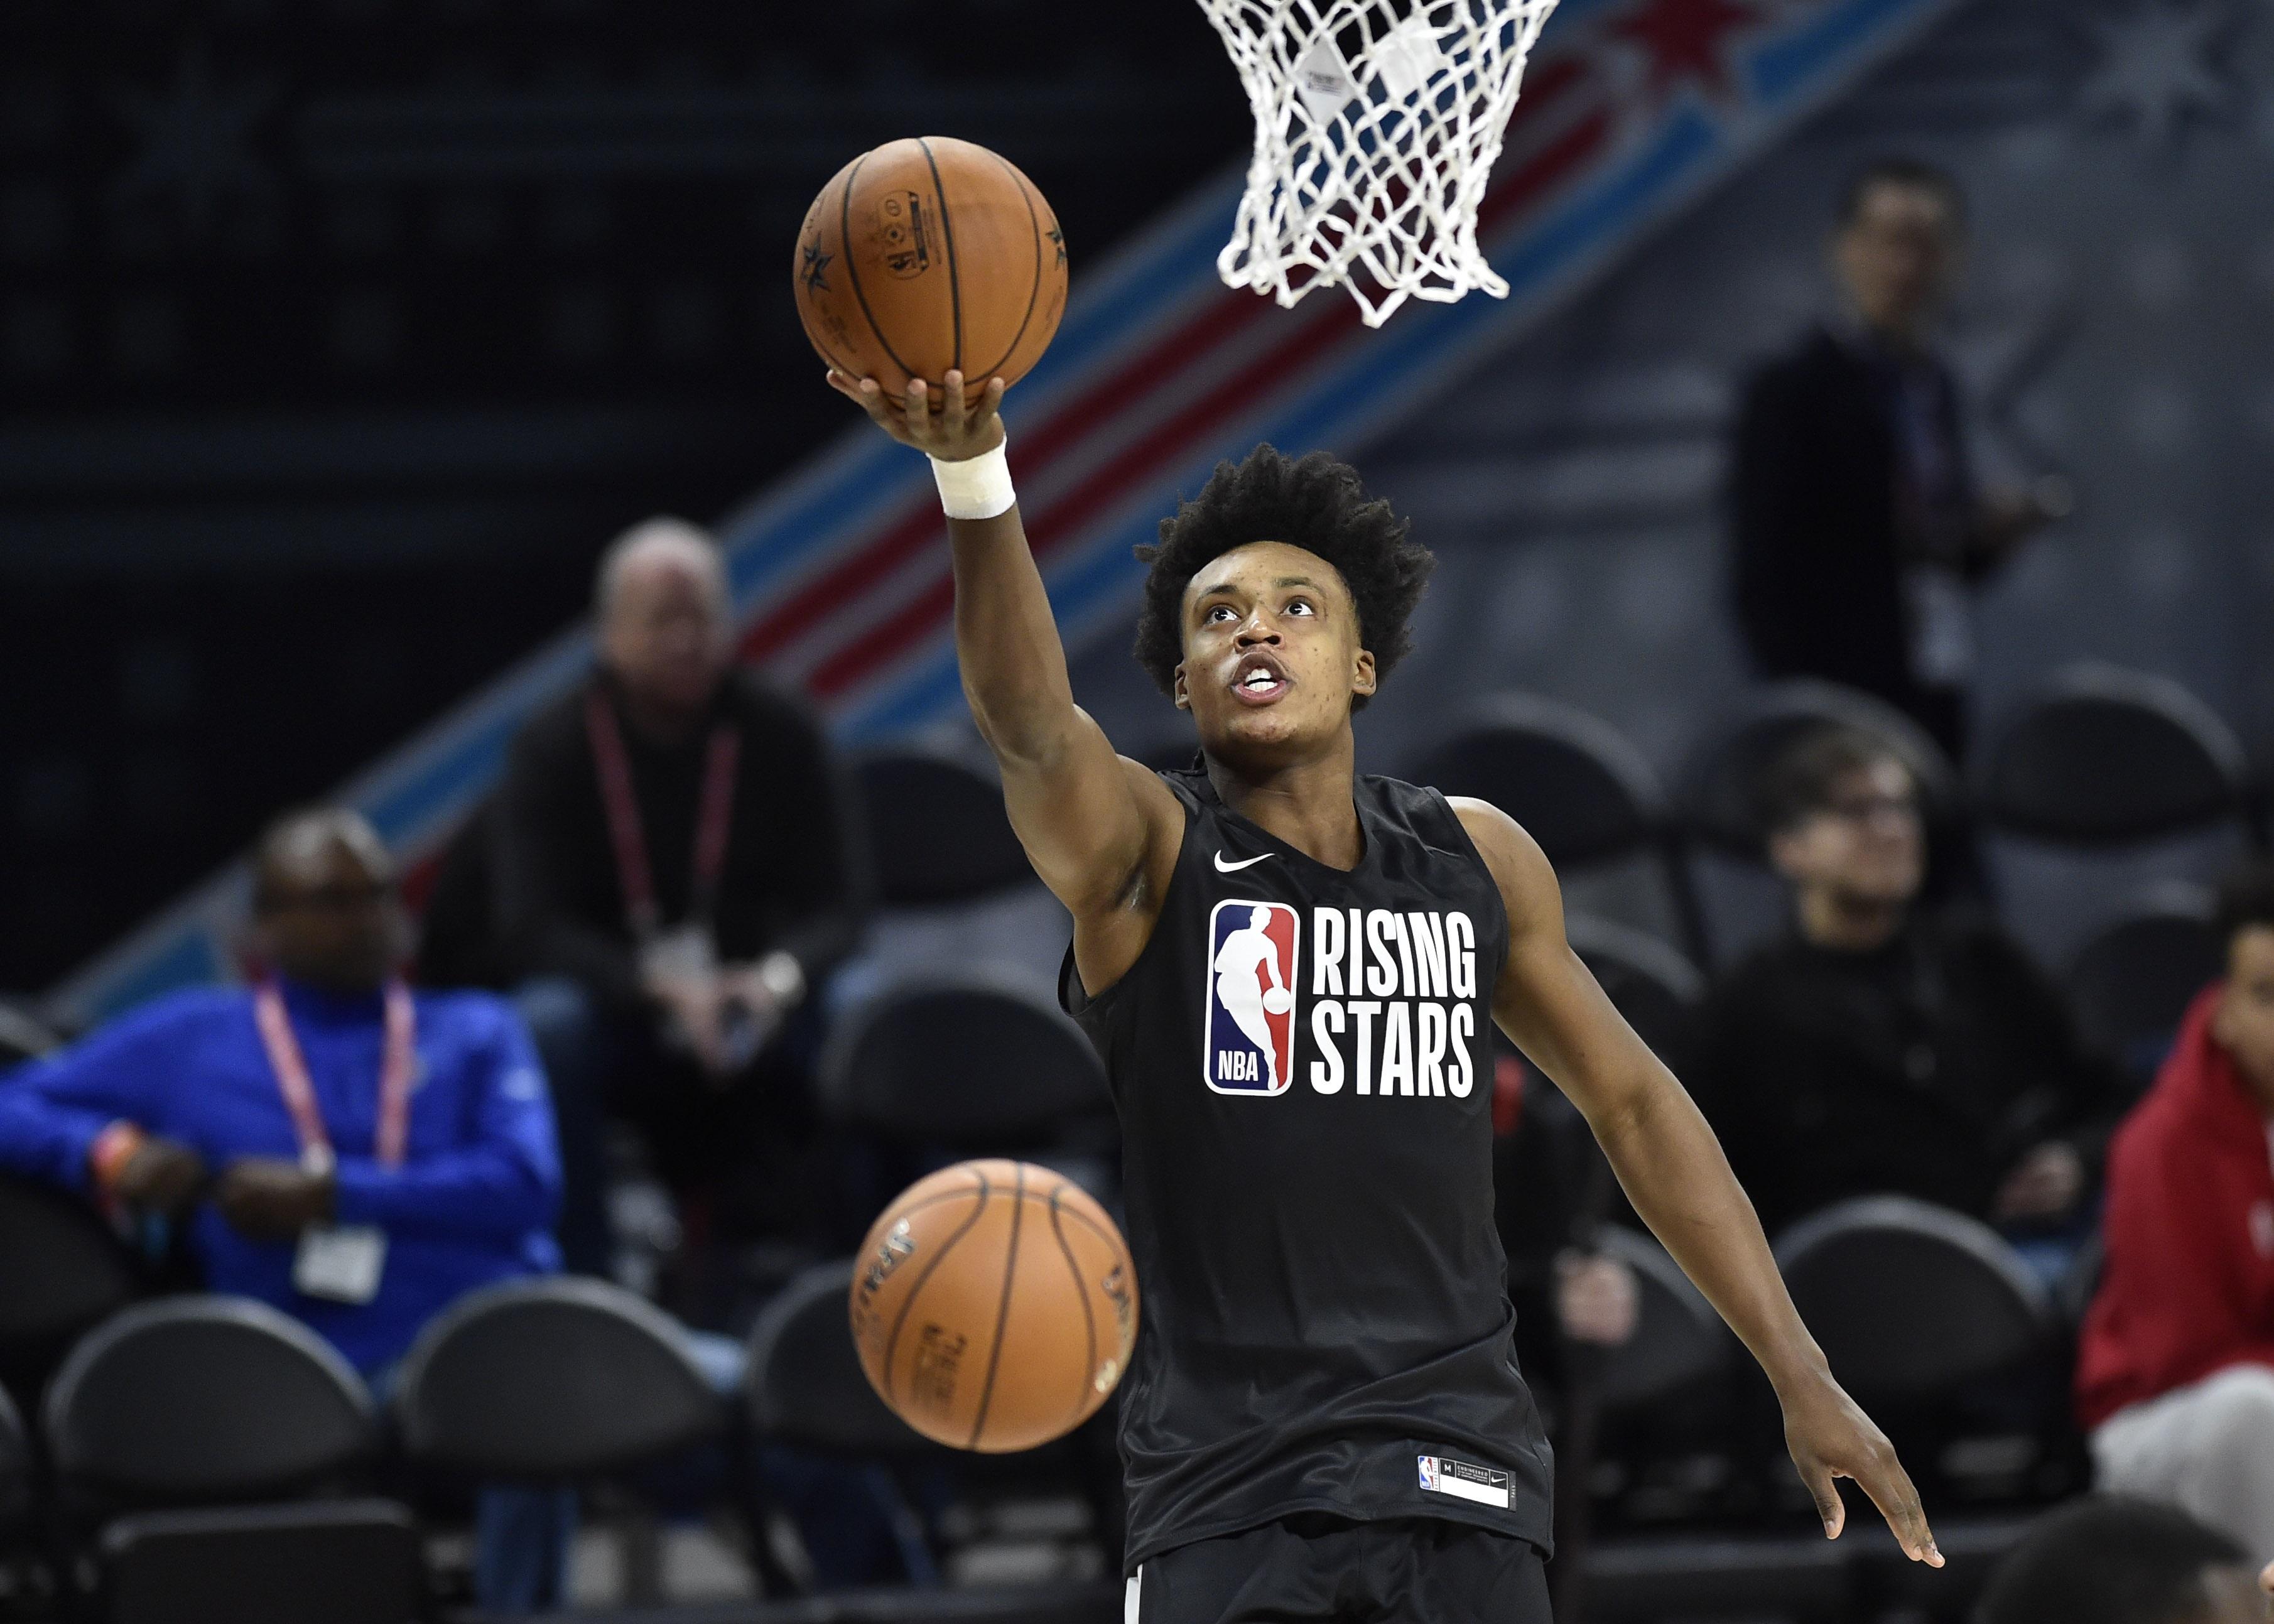 Cavs' Sexton From All-Star Weekend: 'It's An Honor'